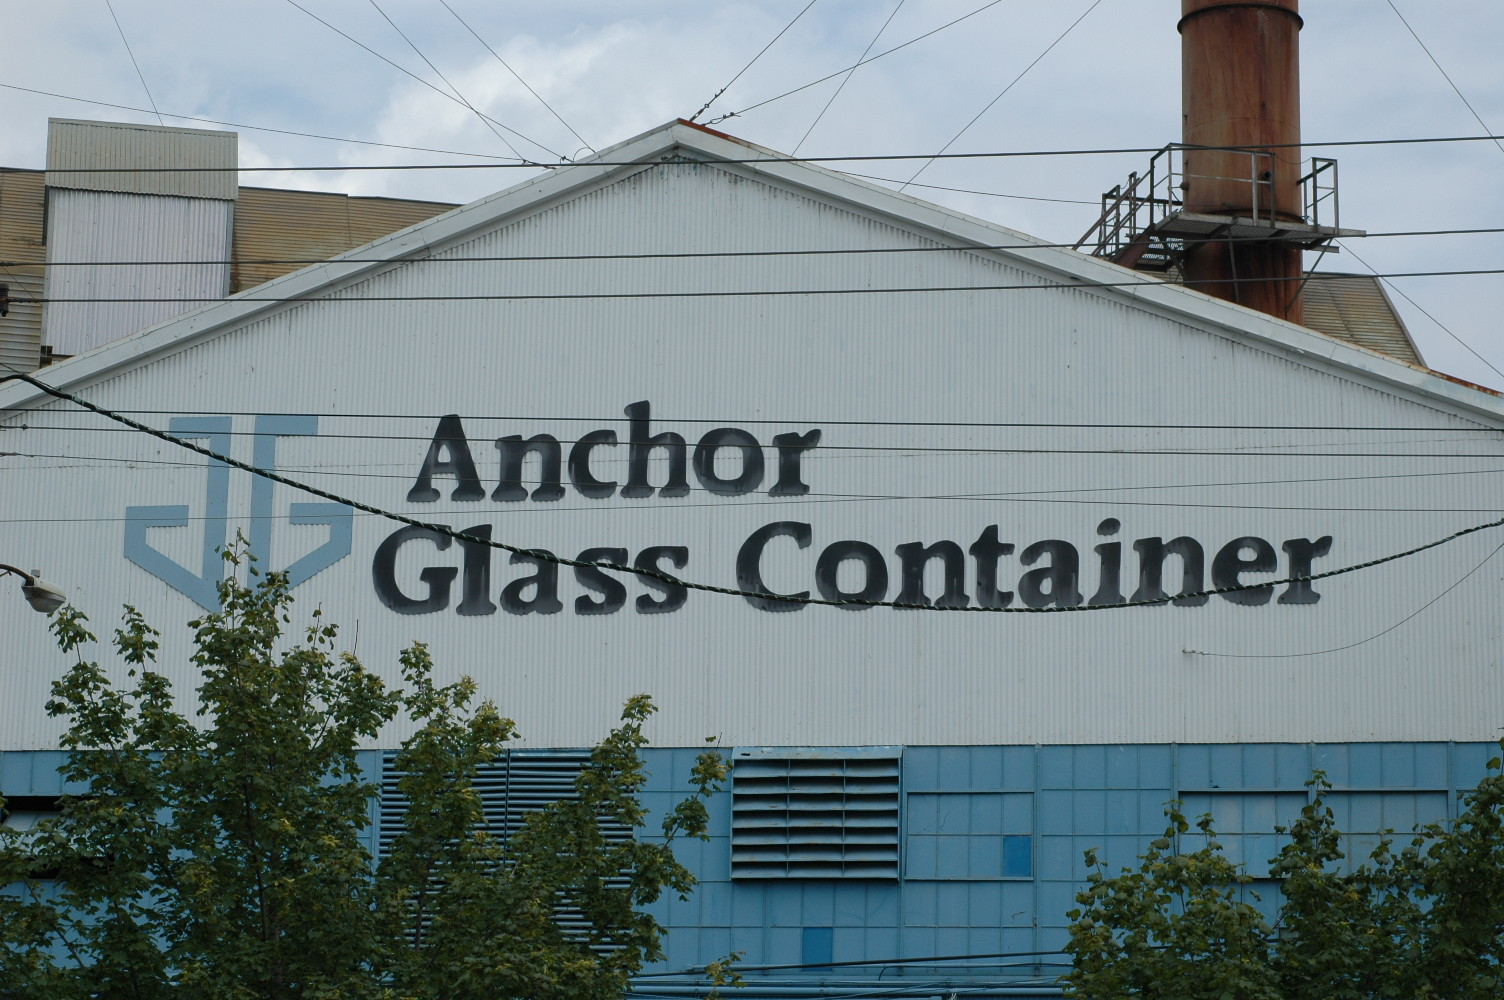 Anchor Hocking Glass Museum History Of Anchor Hocking - Museums for sale in us